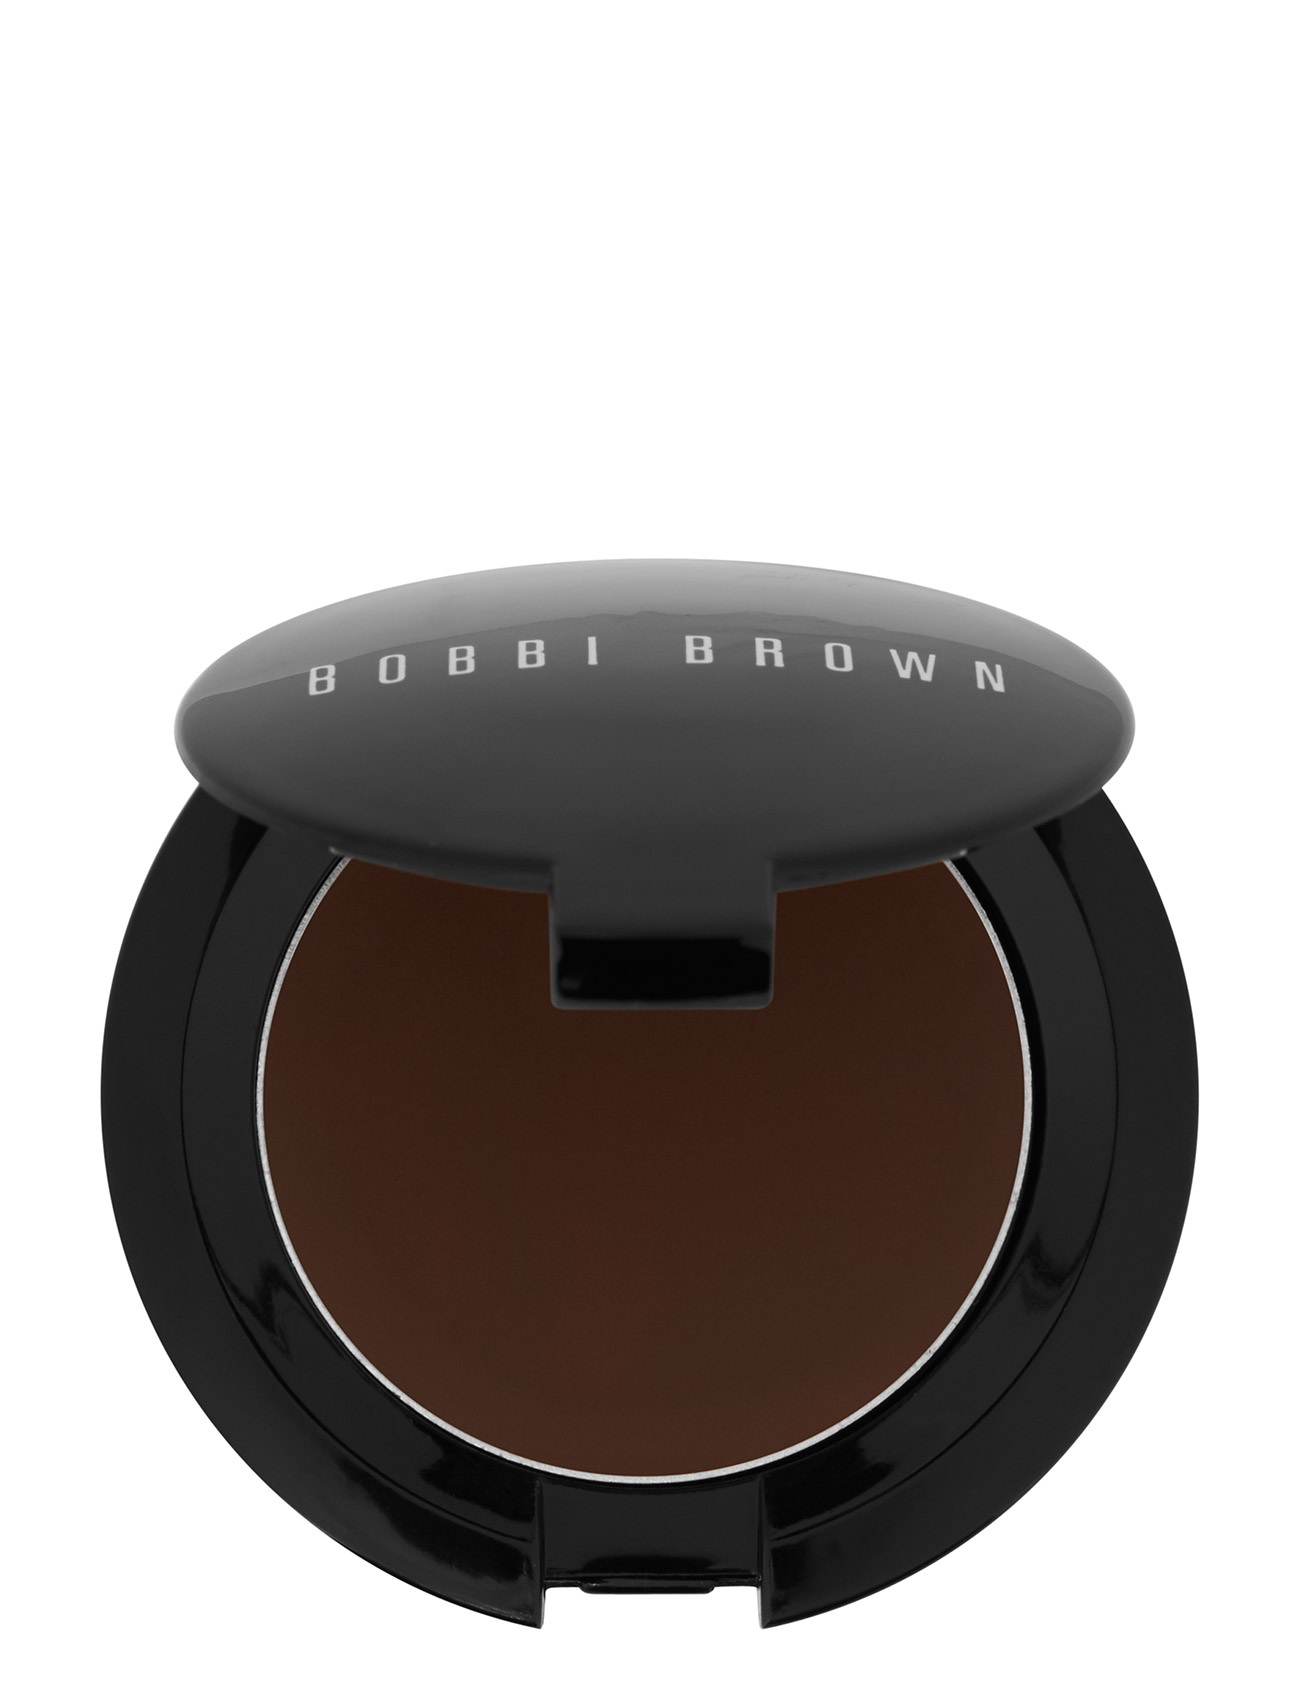 bobbi brown – Long-wear brow gel; mahogany på boozt.com dk